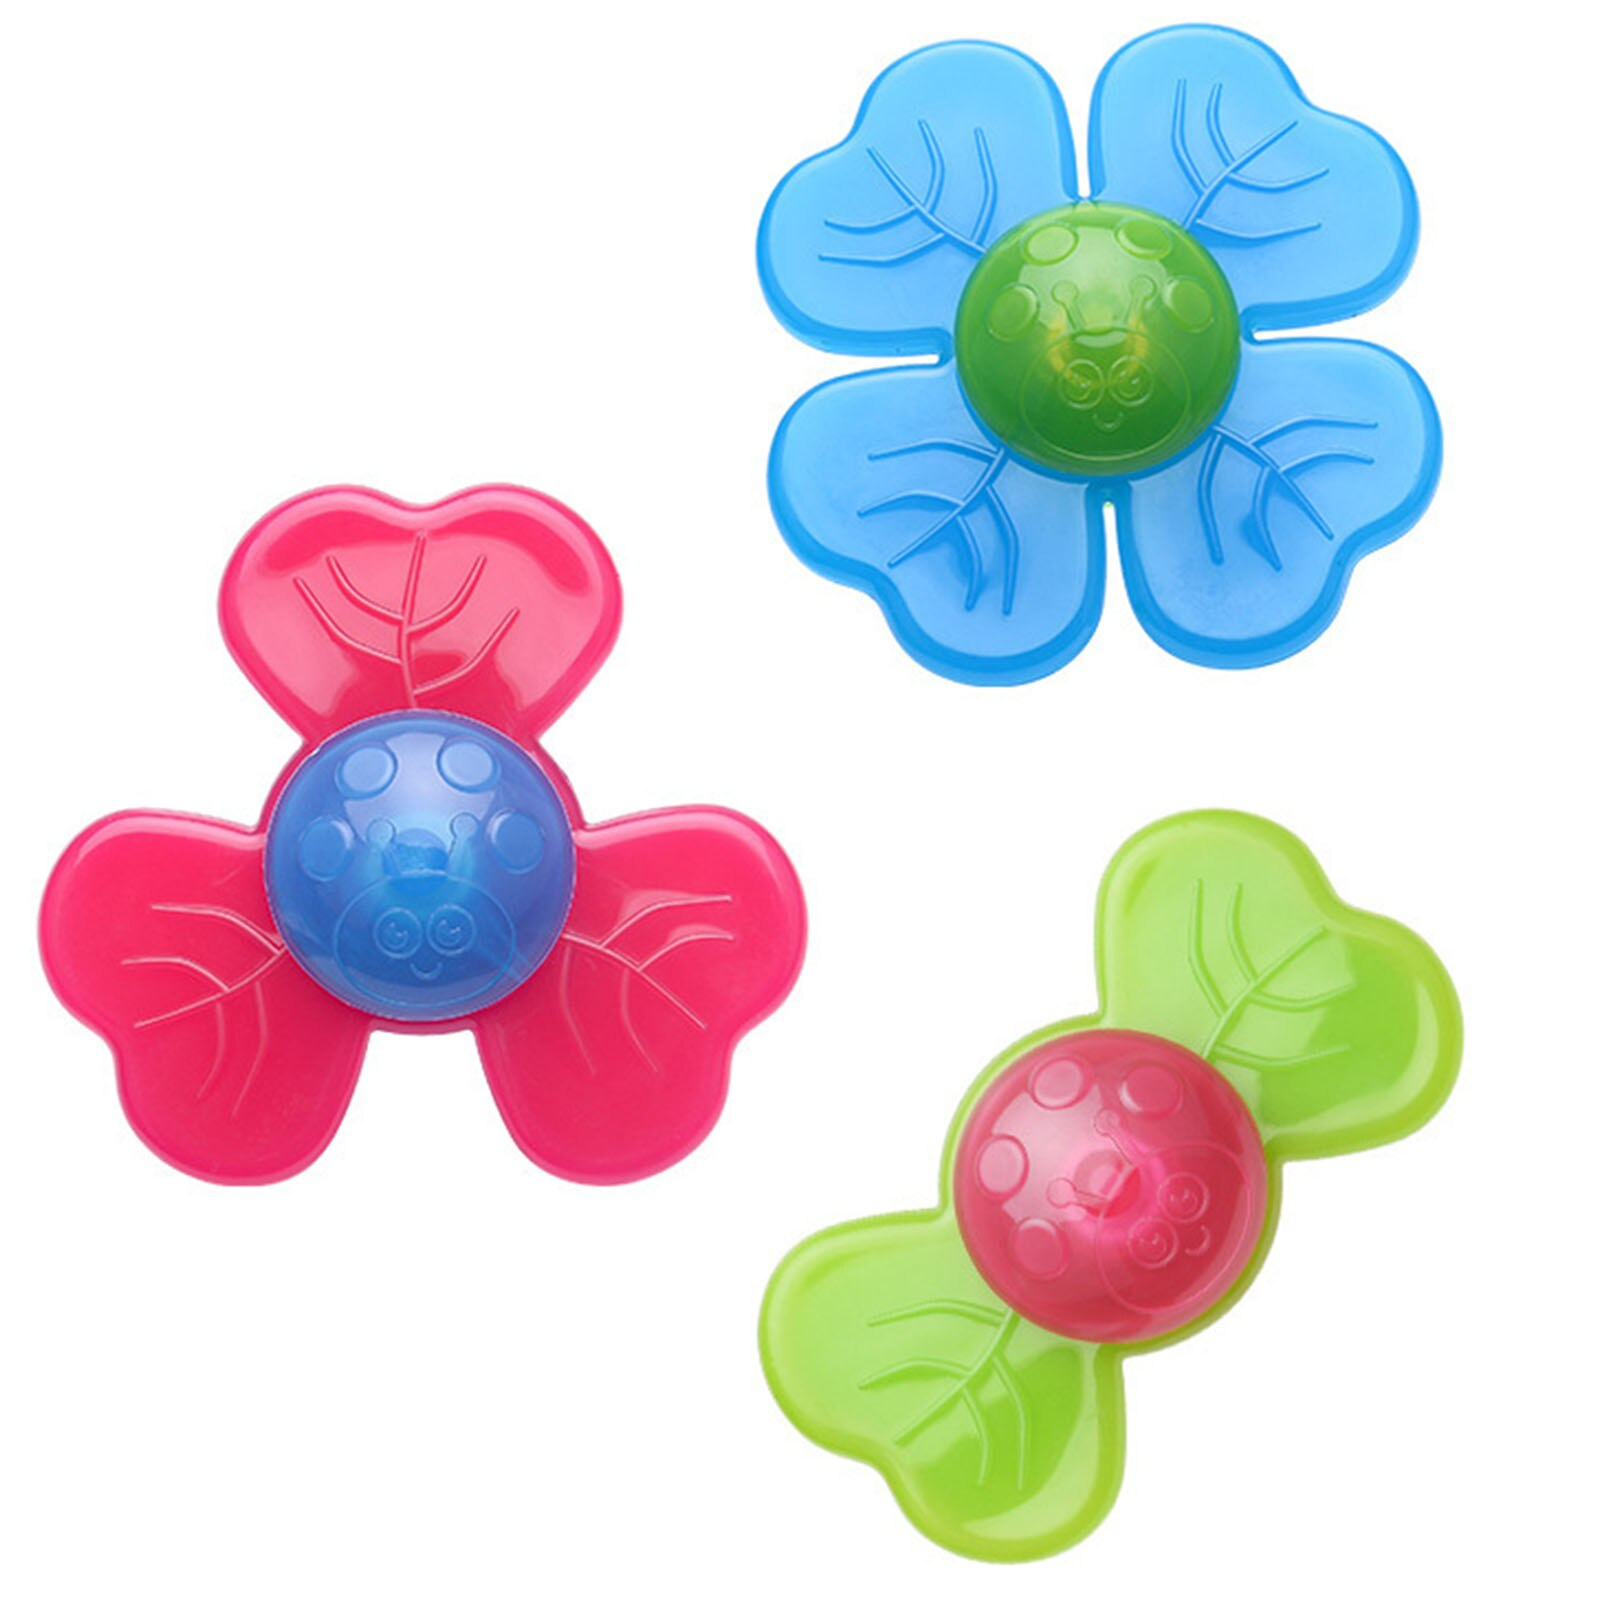 3PCS/Set Baby Fingers Hand Spinners Flower Suction Cup Spinning Top Table Sucker Toys For Children Kids enlarge